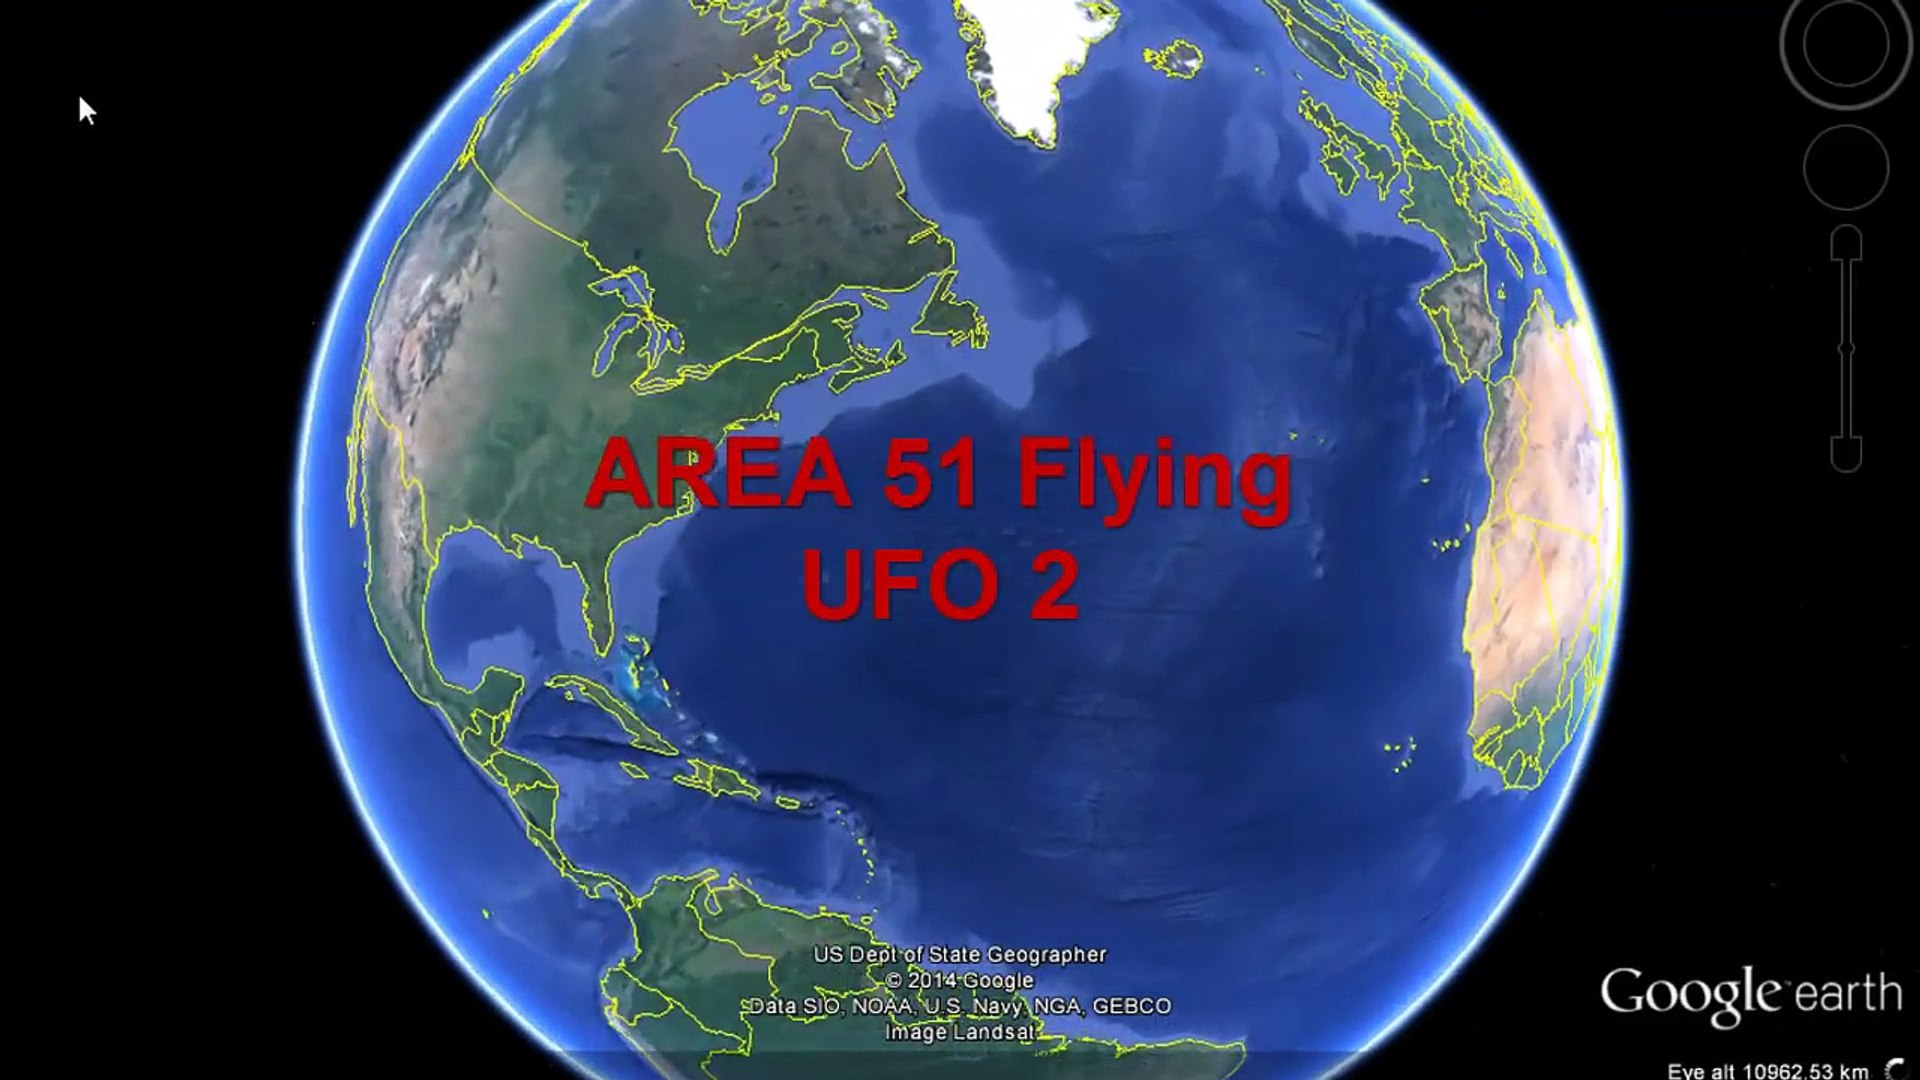 GOOGLE EARTH AMAZING UFOS FOUND ALL OVER THE WORLD!!